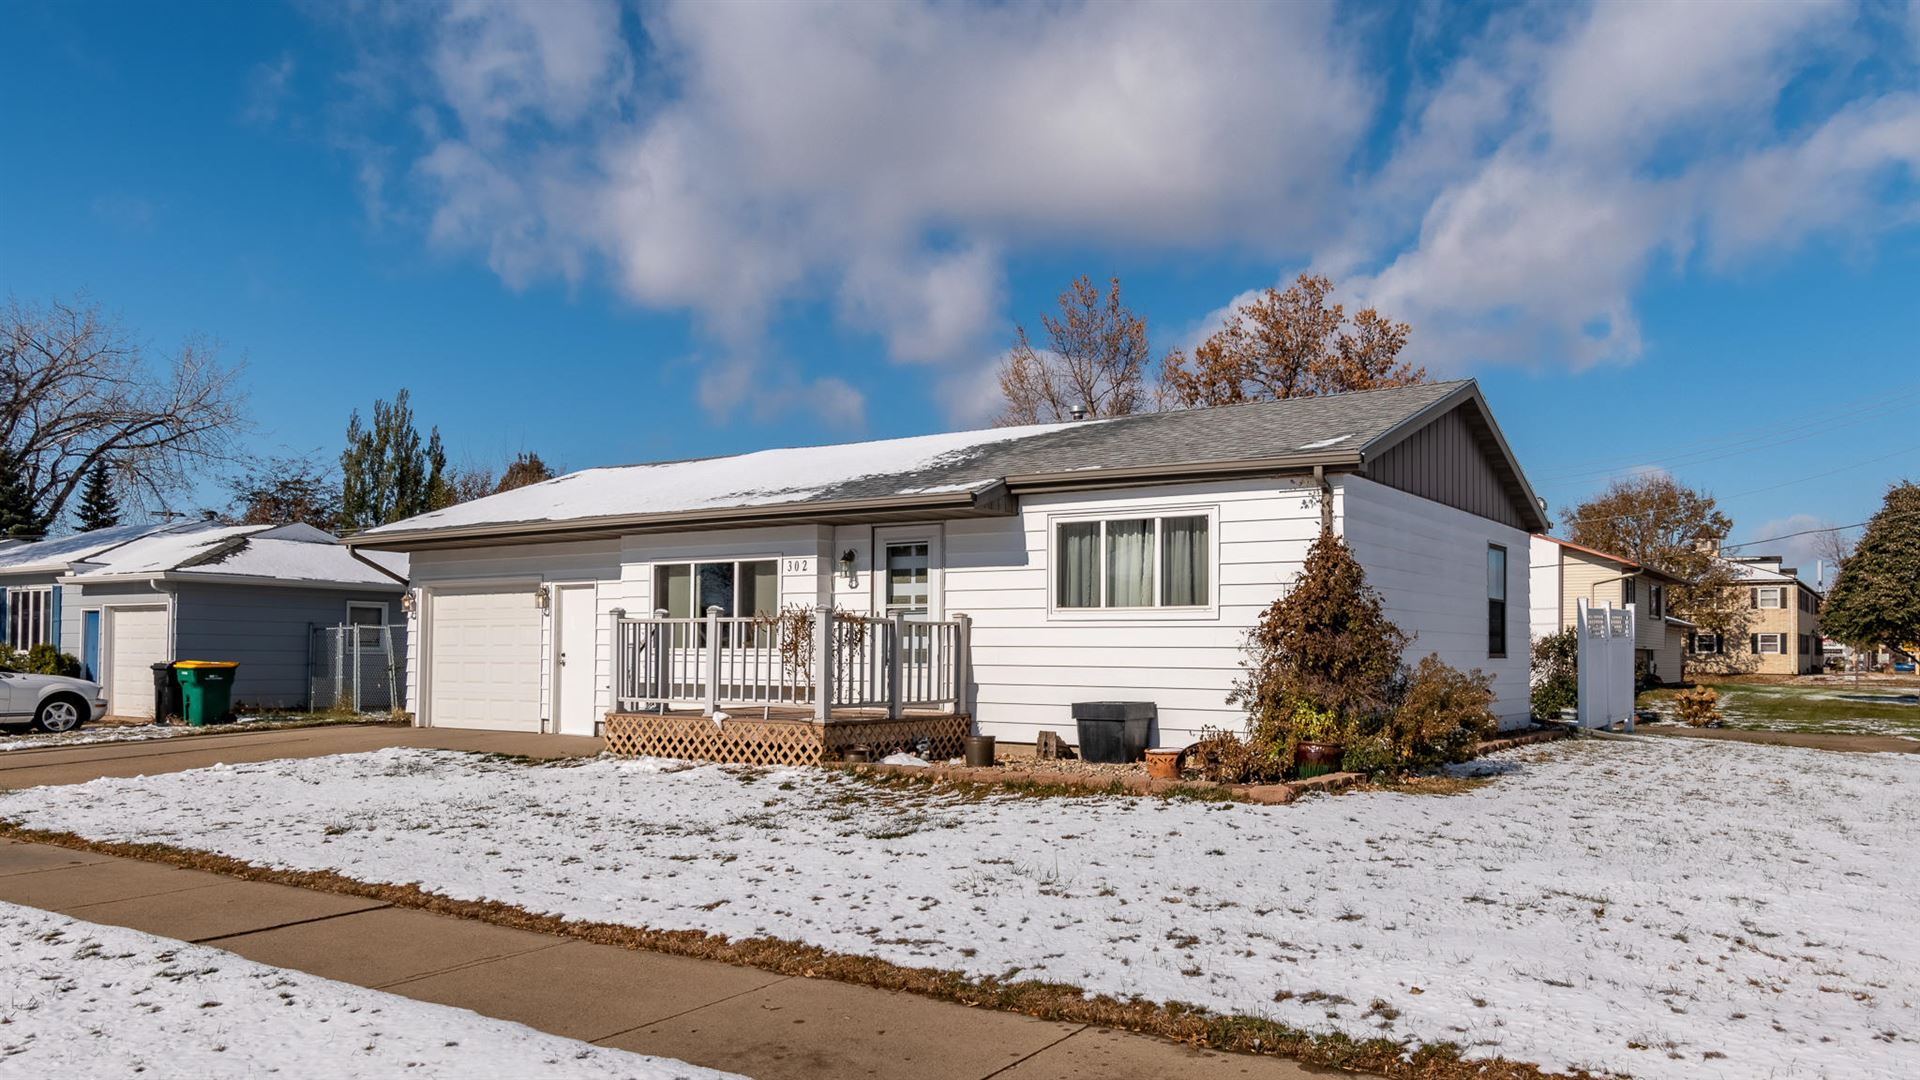 302 Easy Street, Bismarck, ND 58504 - MLS#: 408414